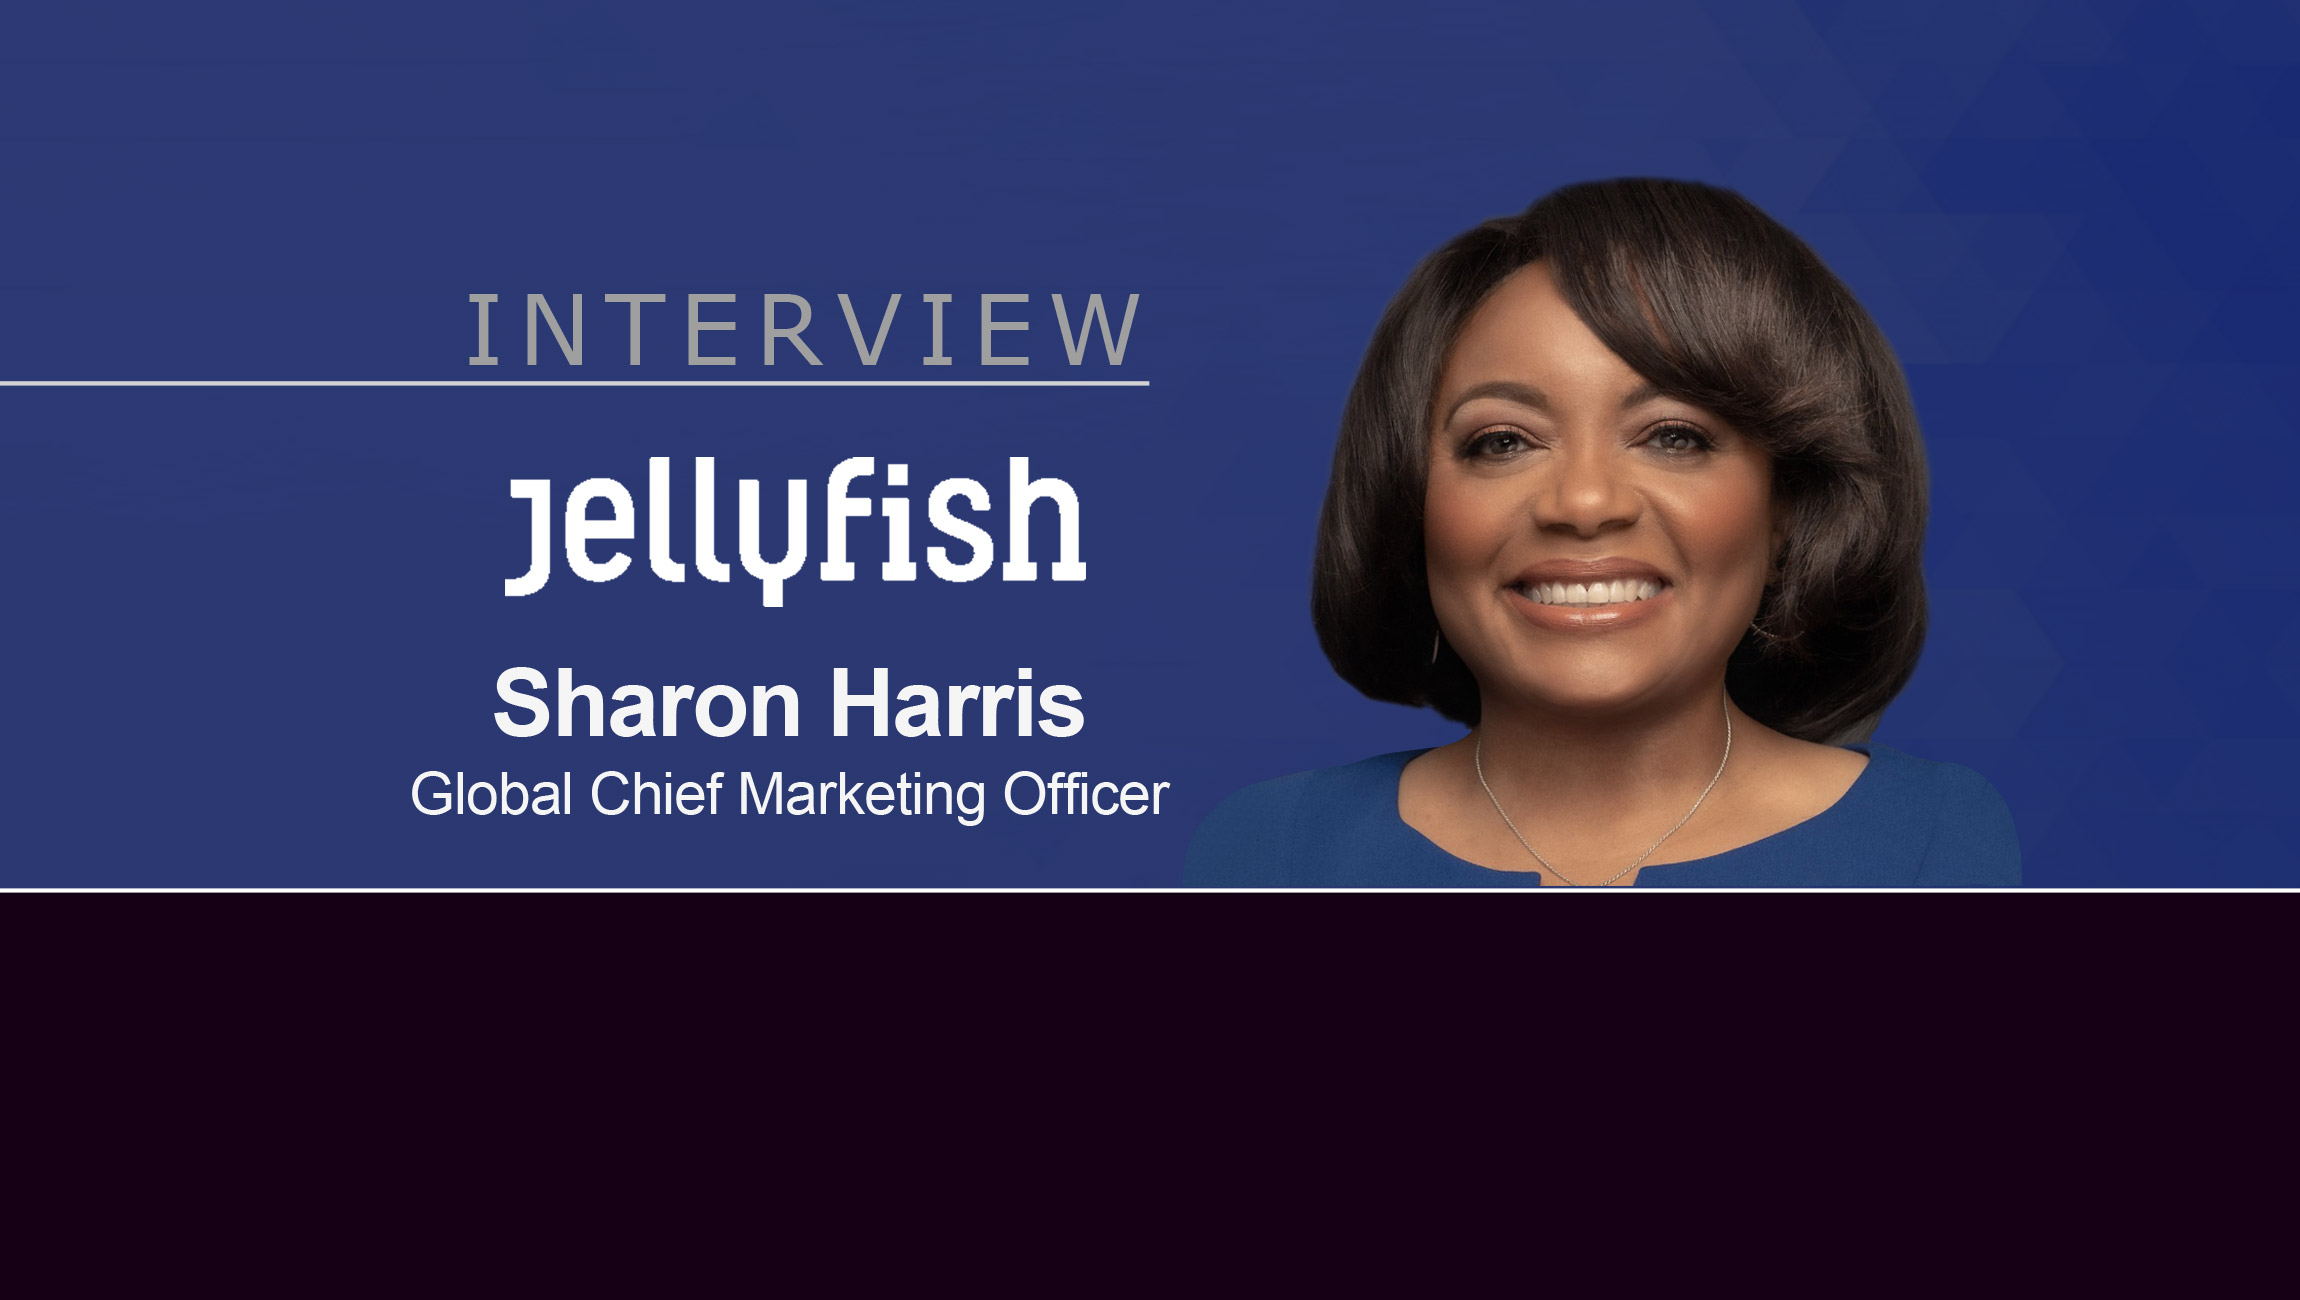 MarTech Interview with Sharon Harris, Global Chief Marketing Officer at Jellyfish